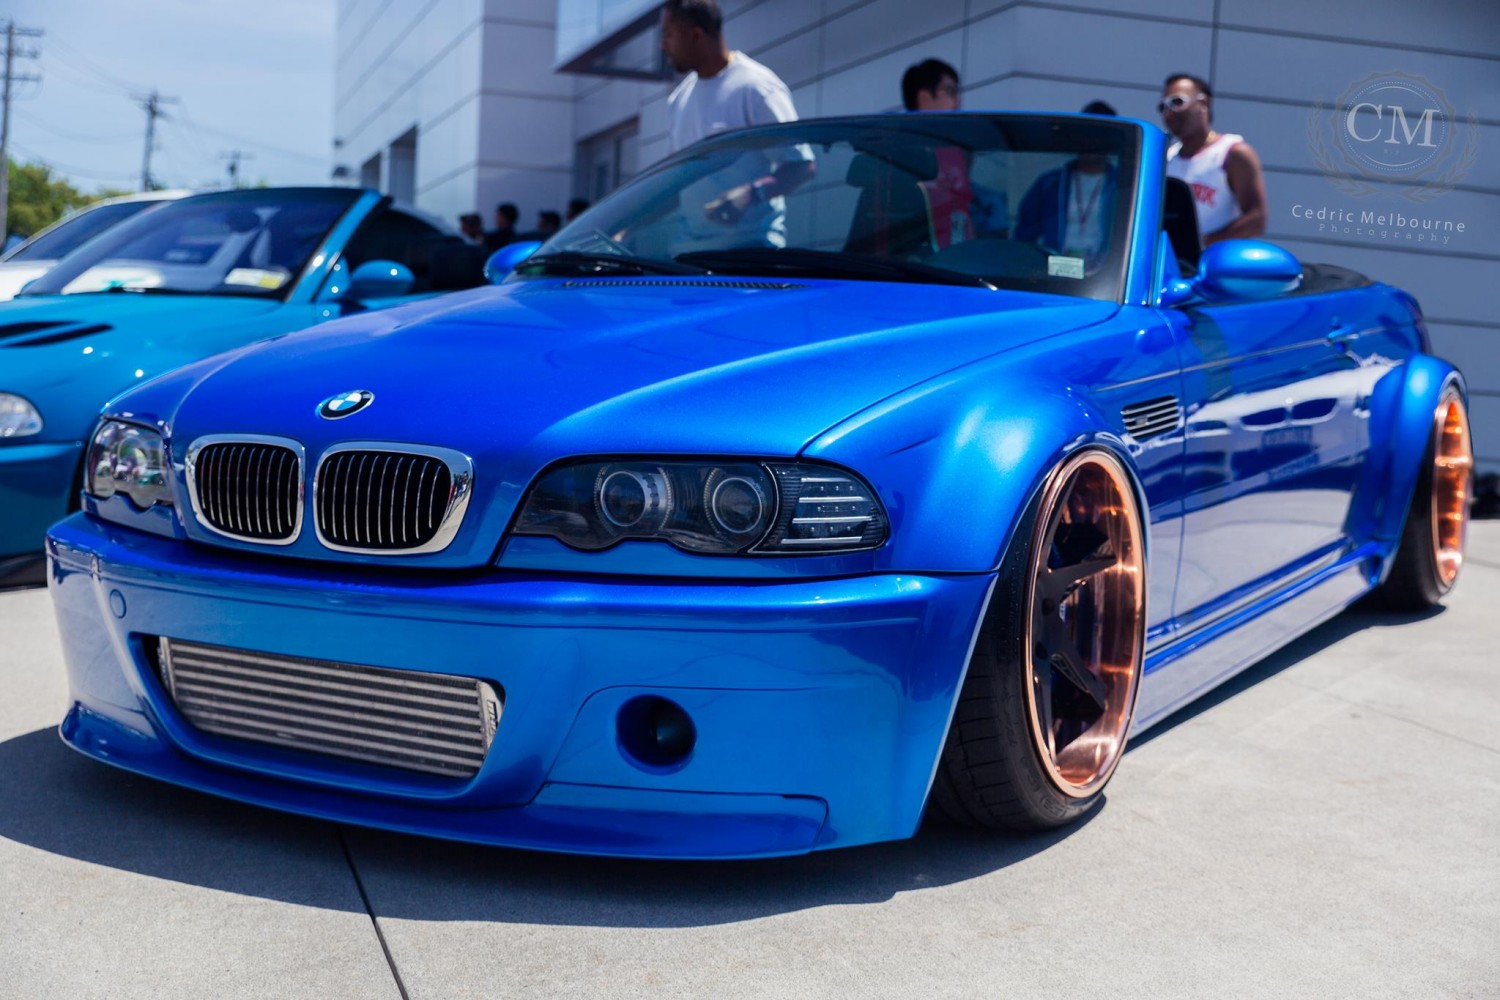 Sick Drop Top BMW! | StanceNation™ // Form > Function